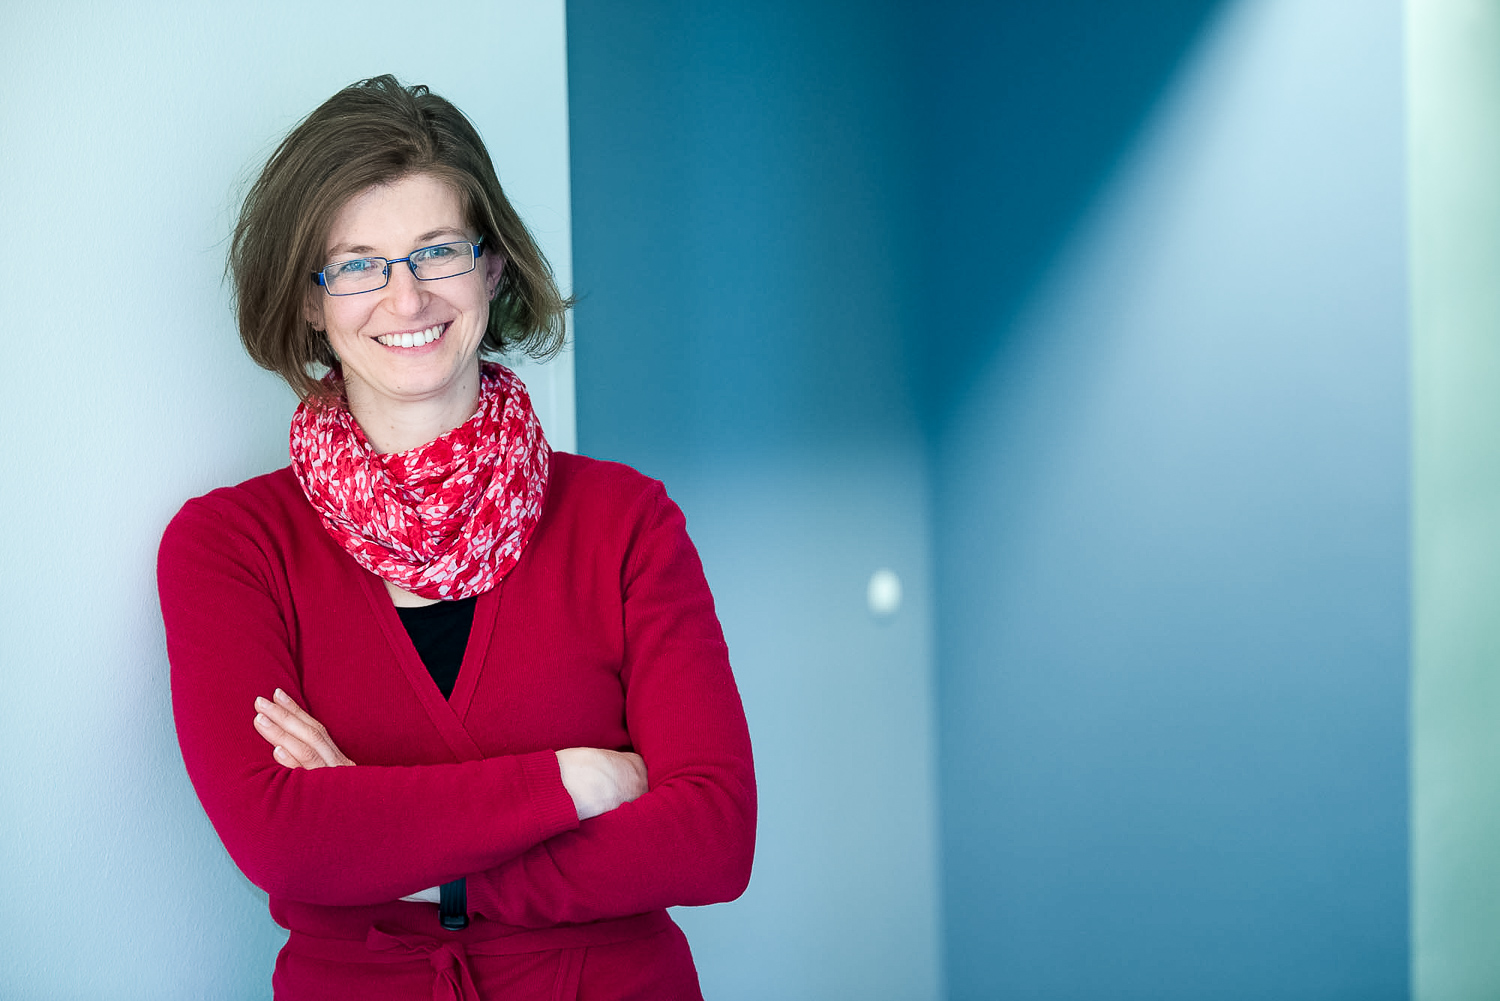 workshop-tejada-241.jpg